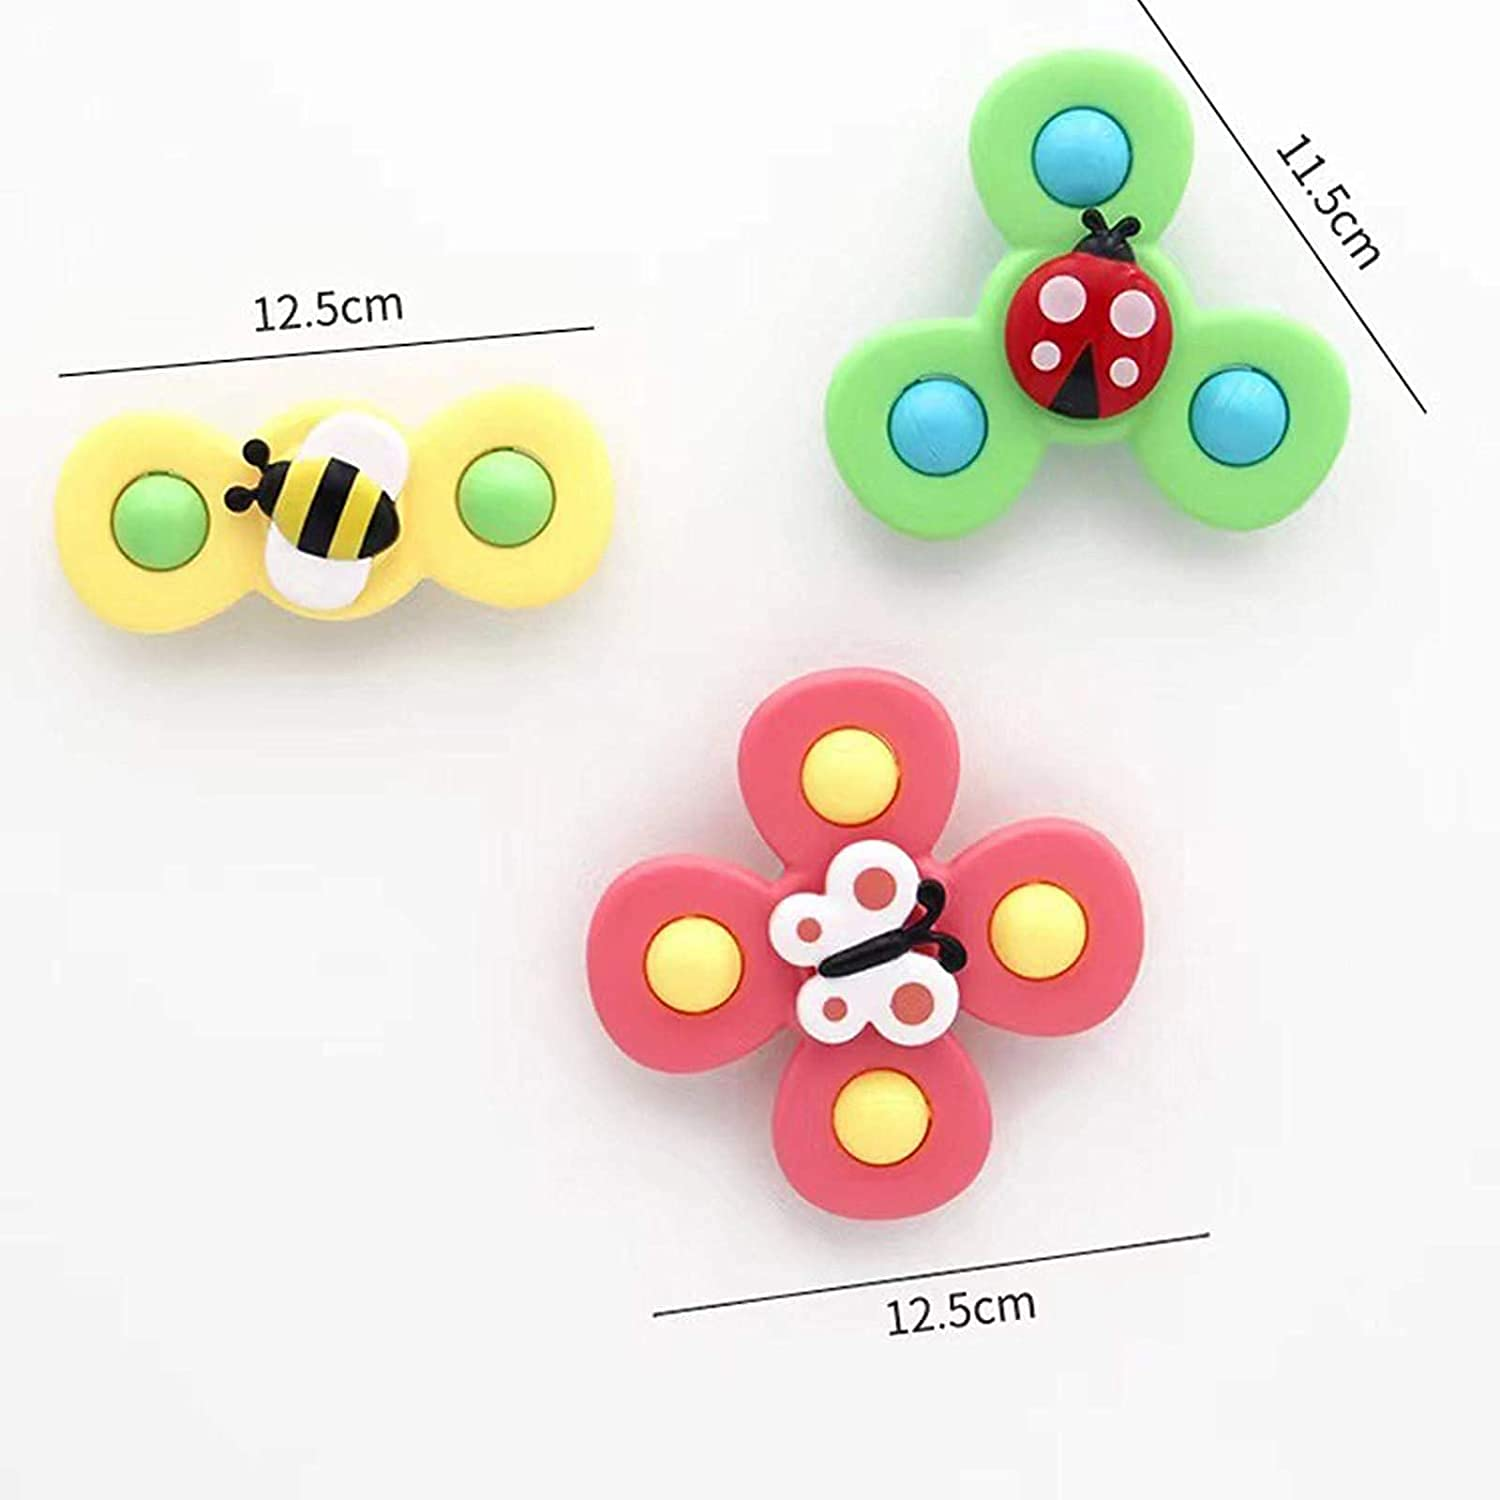 QIUXQIU Suction Cup Spinning Top Toy Windmill Spin Spinners Toys Funny Kids Mini Baby Toys Nice Newborn Gifts for Sensory Learning 3PCS New Animal Version Animal Version